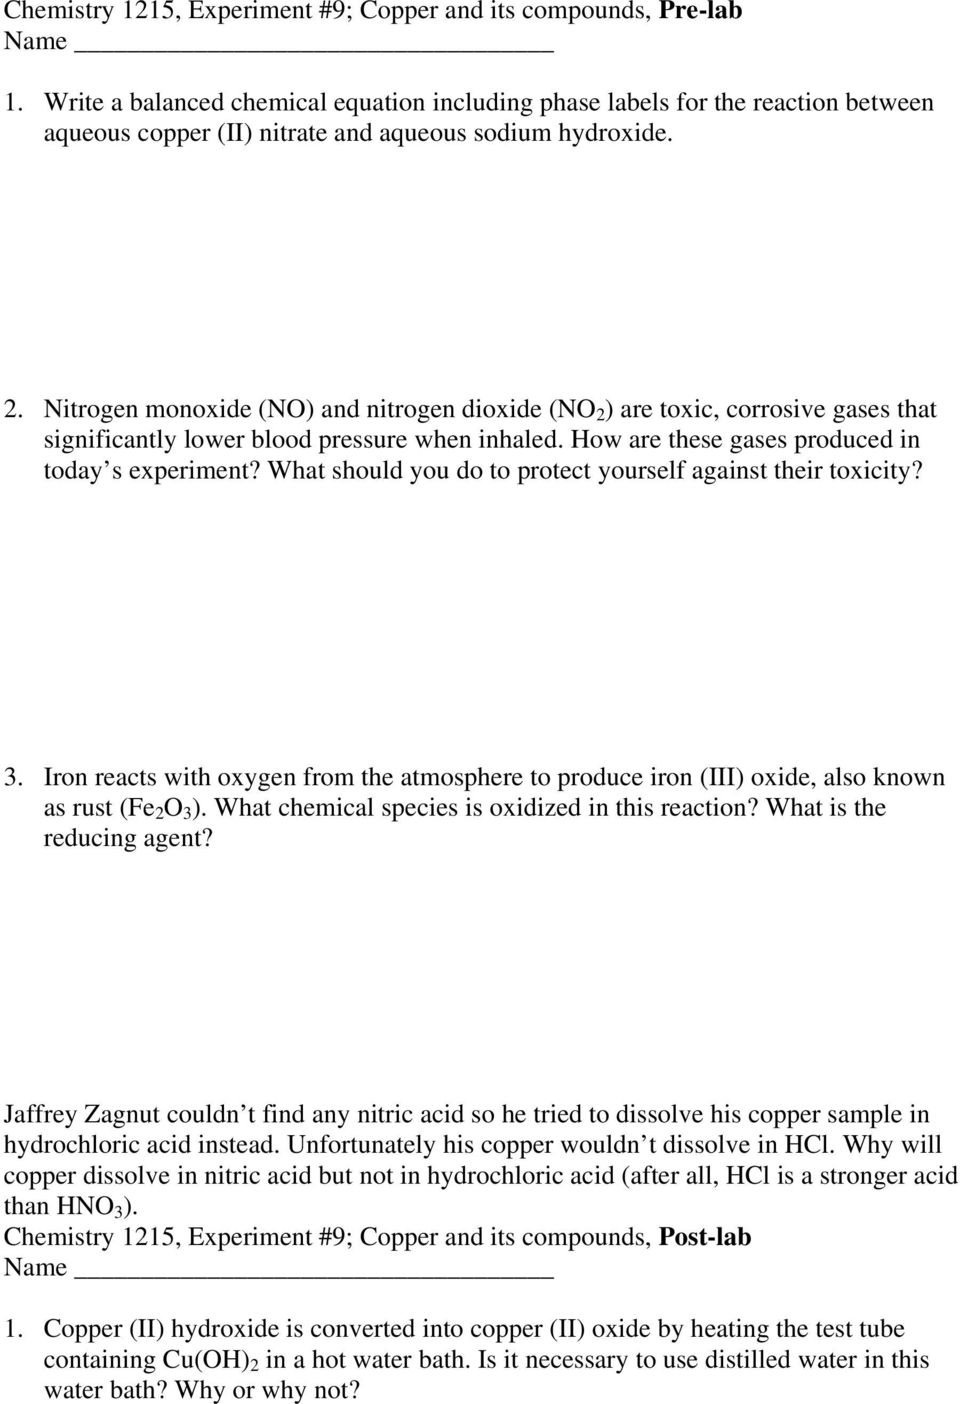 Chemistry 1215 Experiment #9 Copper and its Compounds - PDF